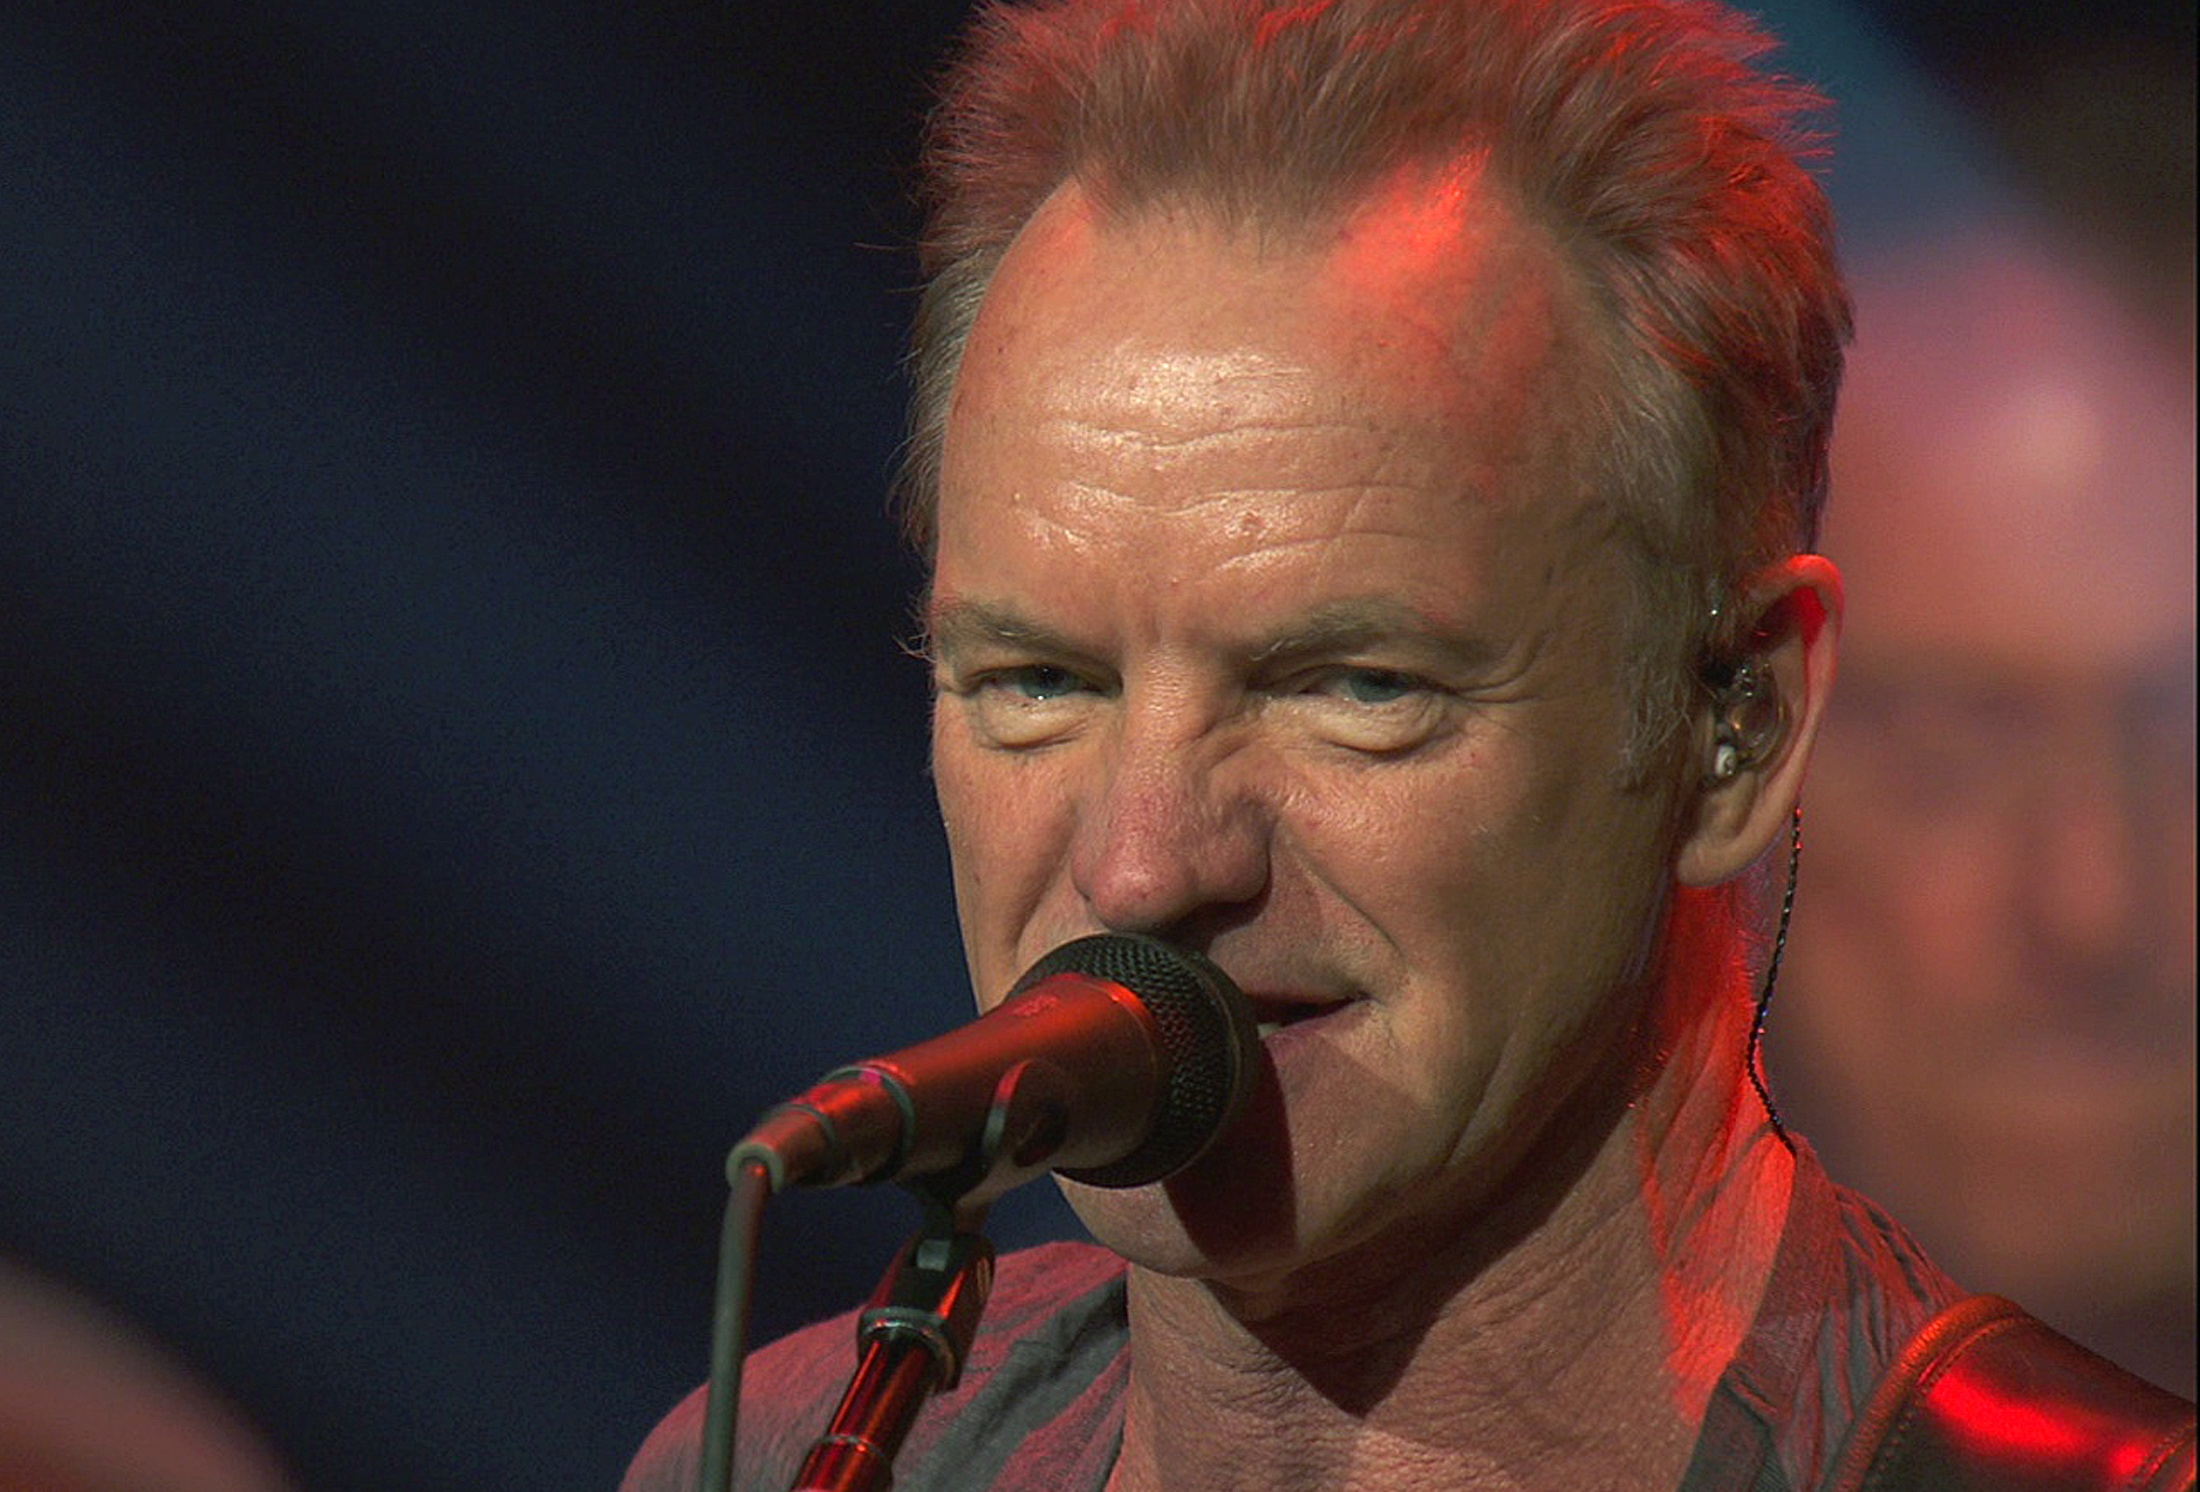 Musician Sting performs sound-check before his performance at the Bataclan concert hall in Paris